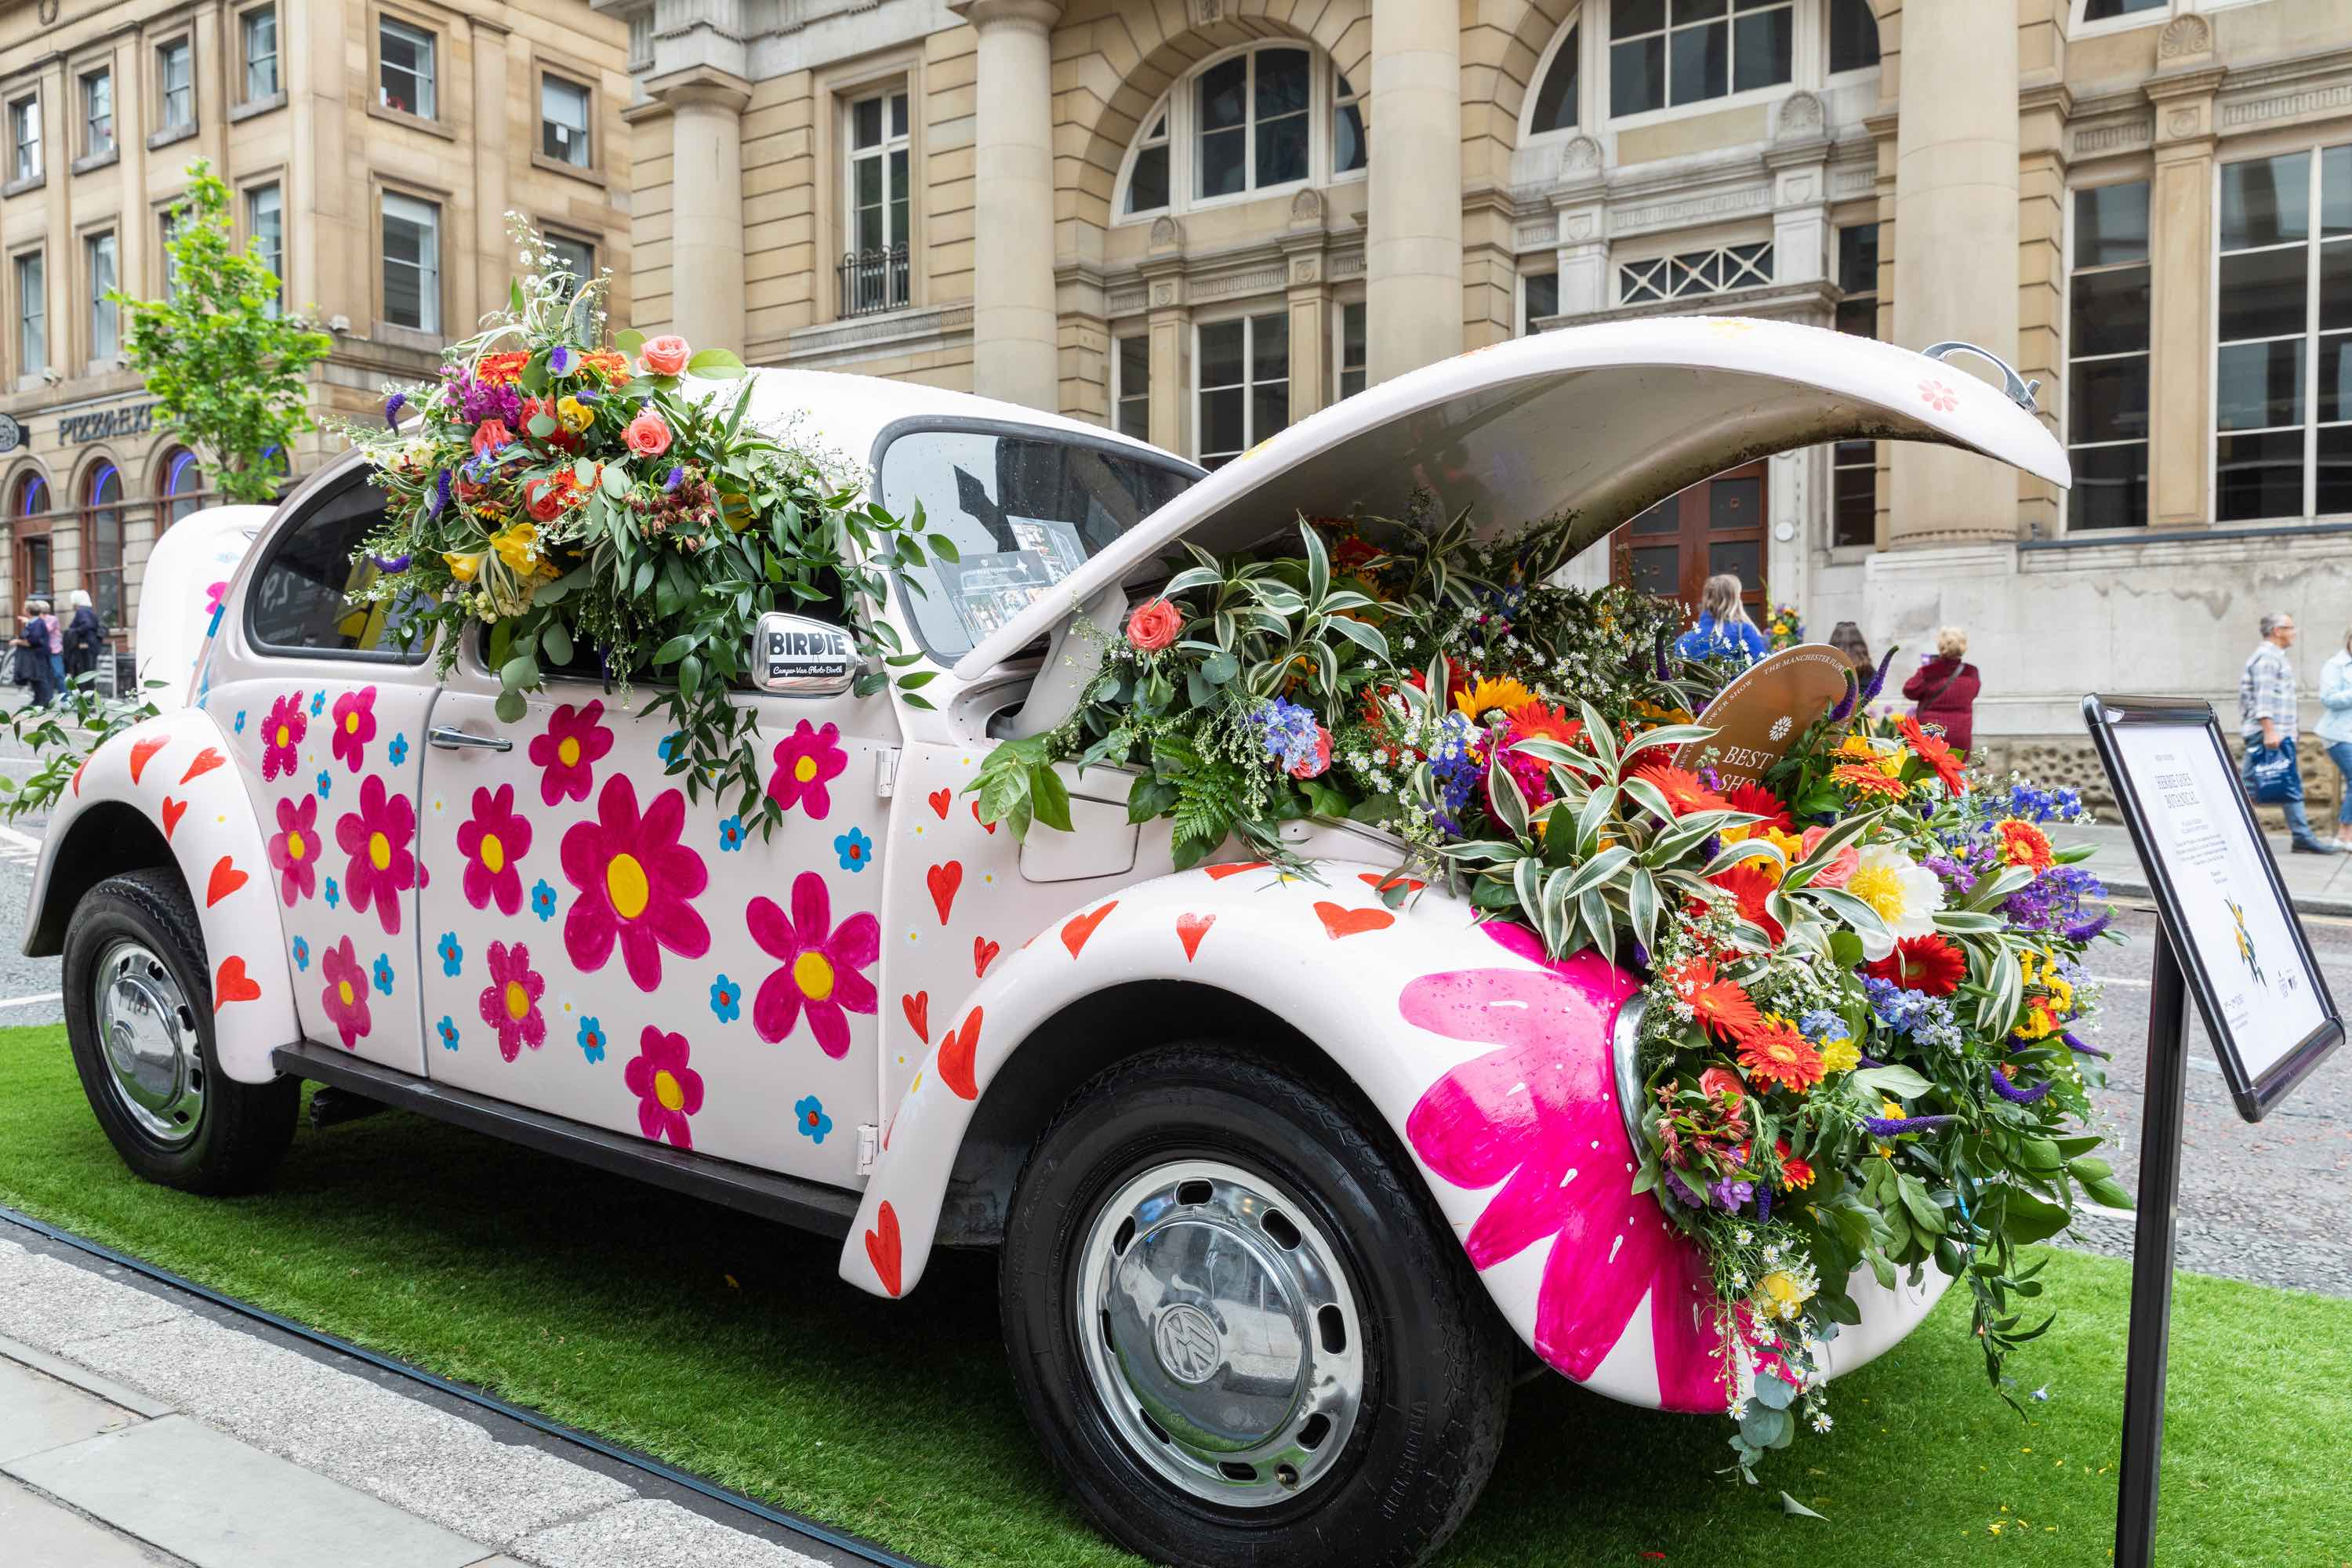 The Manchester Flower Show seeks a wide range of entries